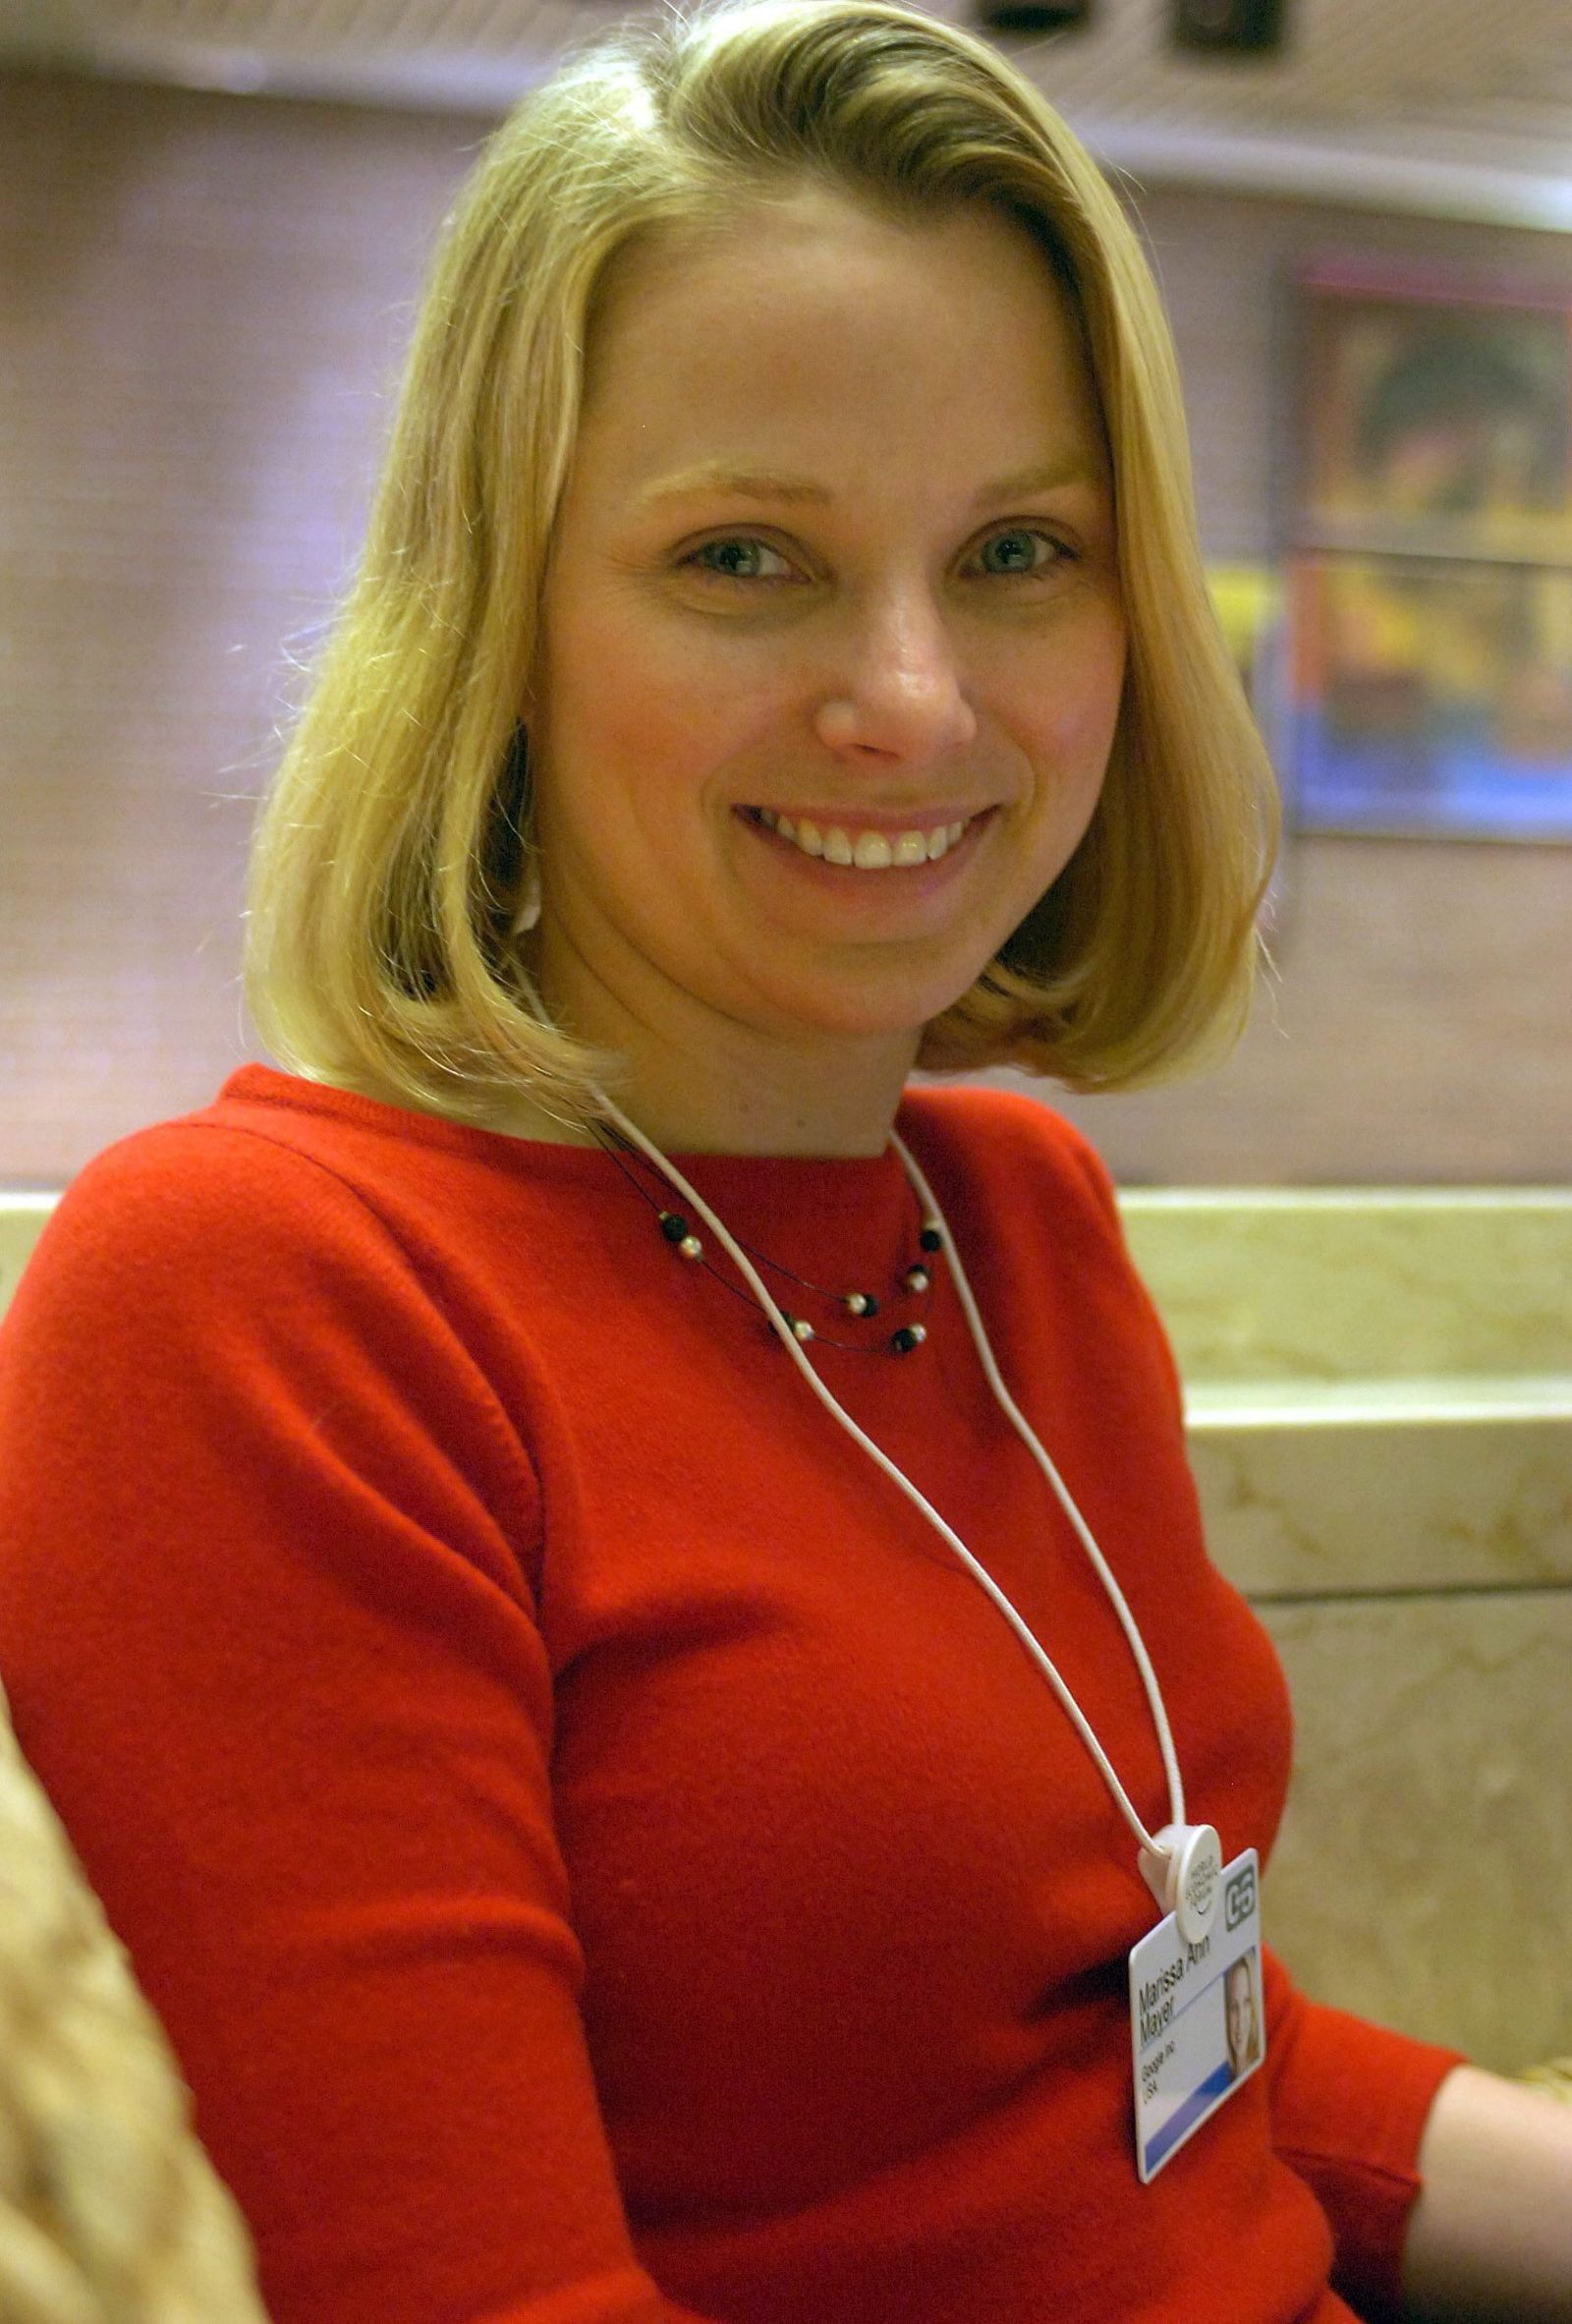 Marissa Ann Mayer, to become CEO of Yahoo